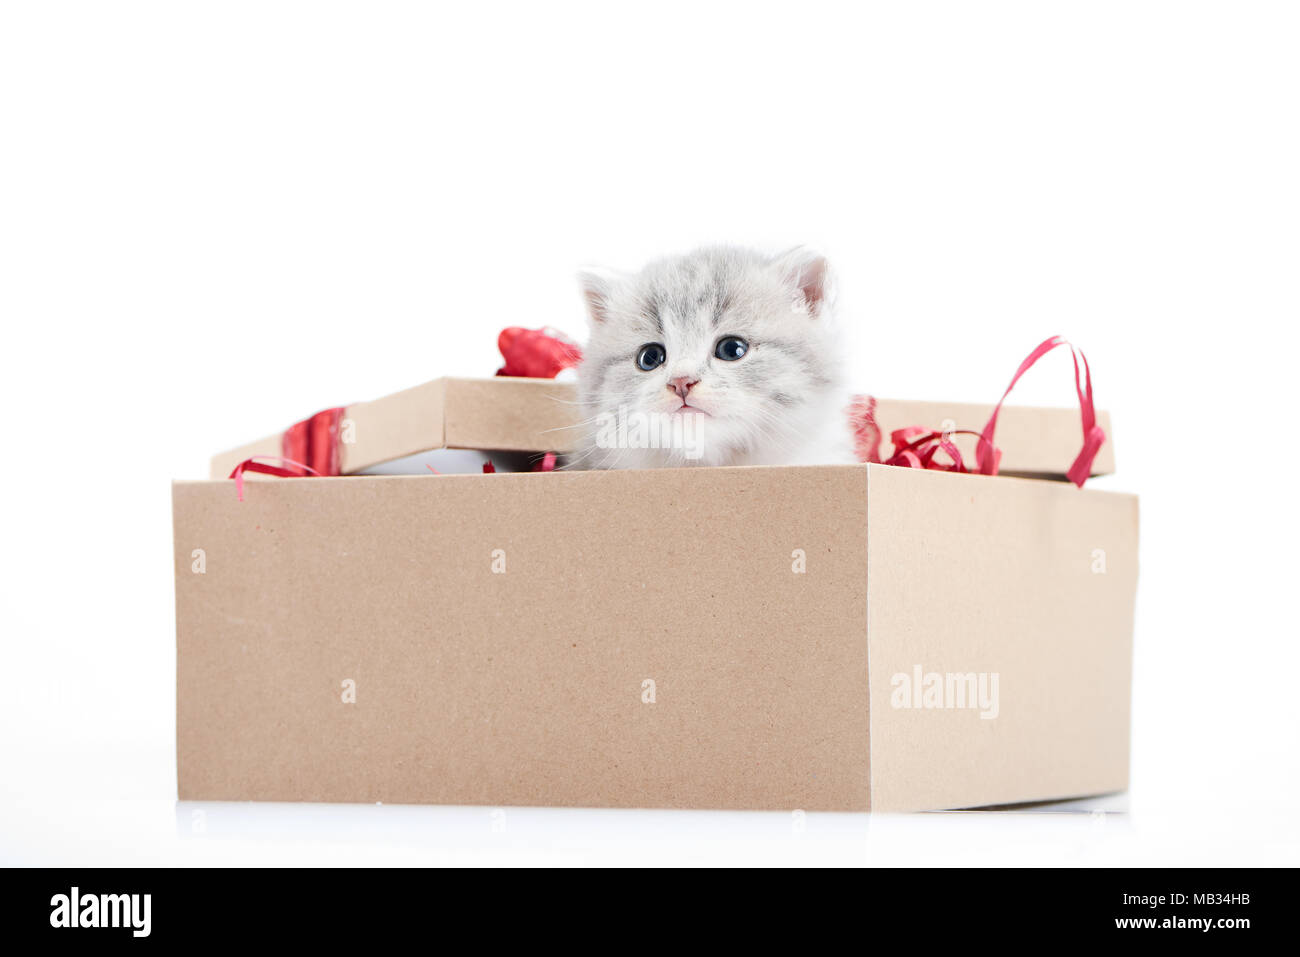 Little Adorable Fluffy Kitten Looking Out Of Decorated Cardboard Box Being Present For Special Occasion Small Cute Pretty Funny Playful Curious Cat